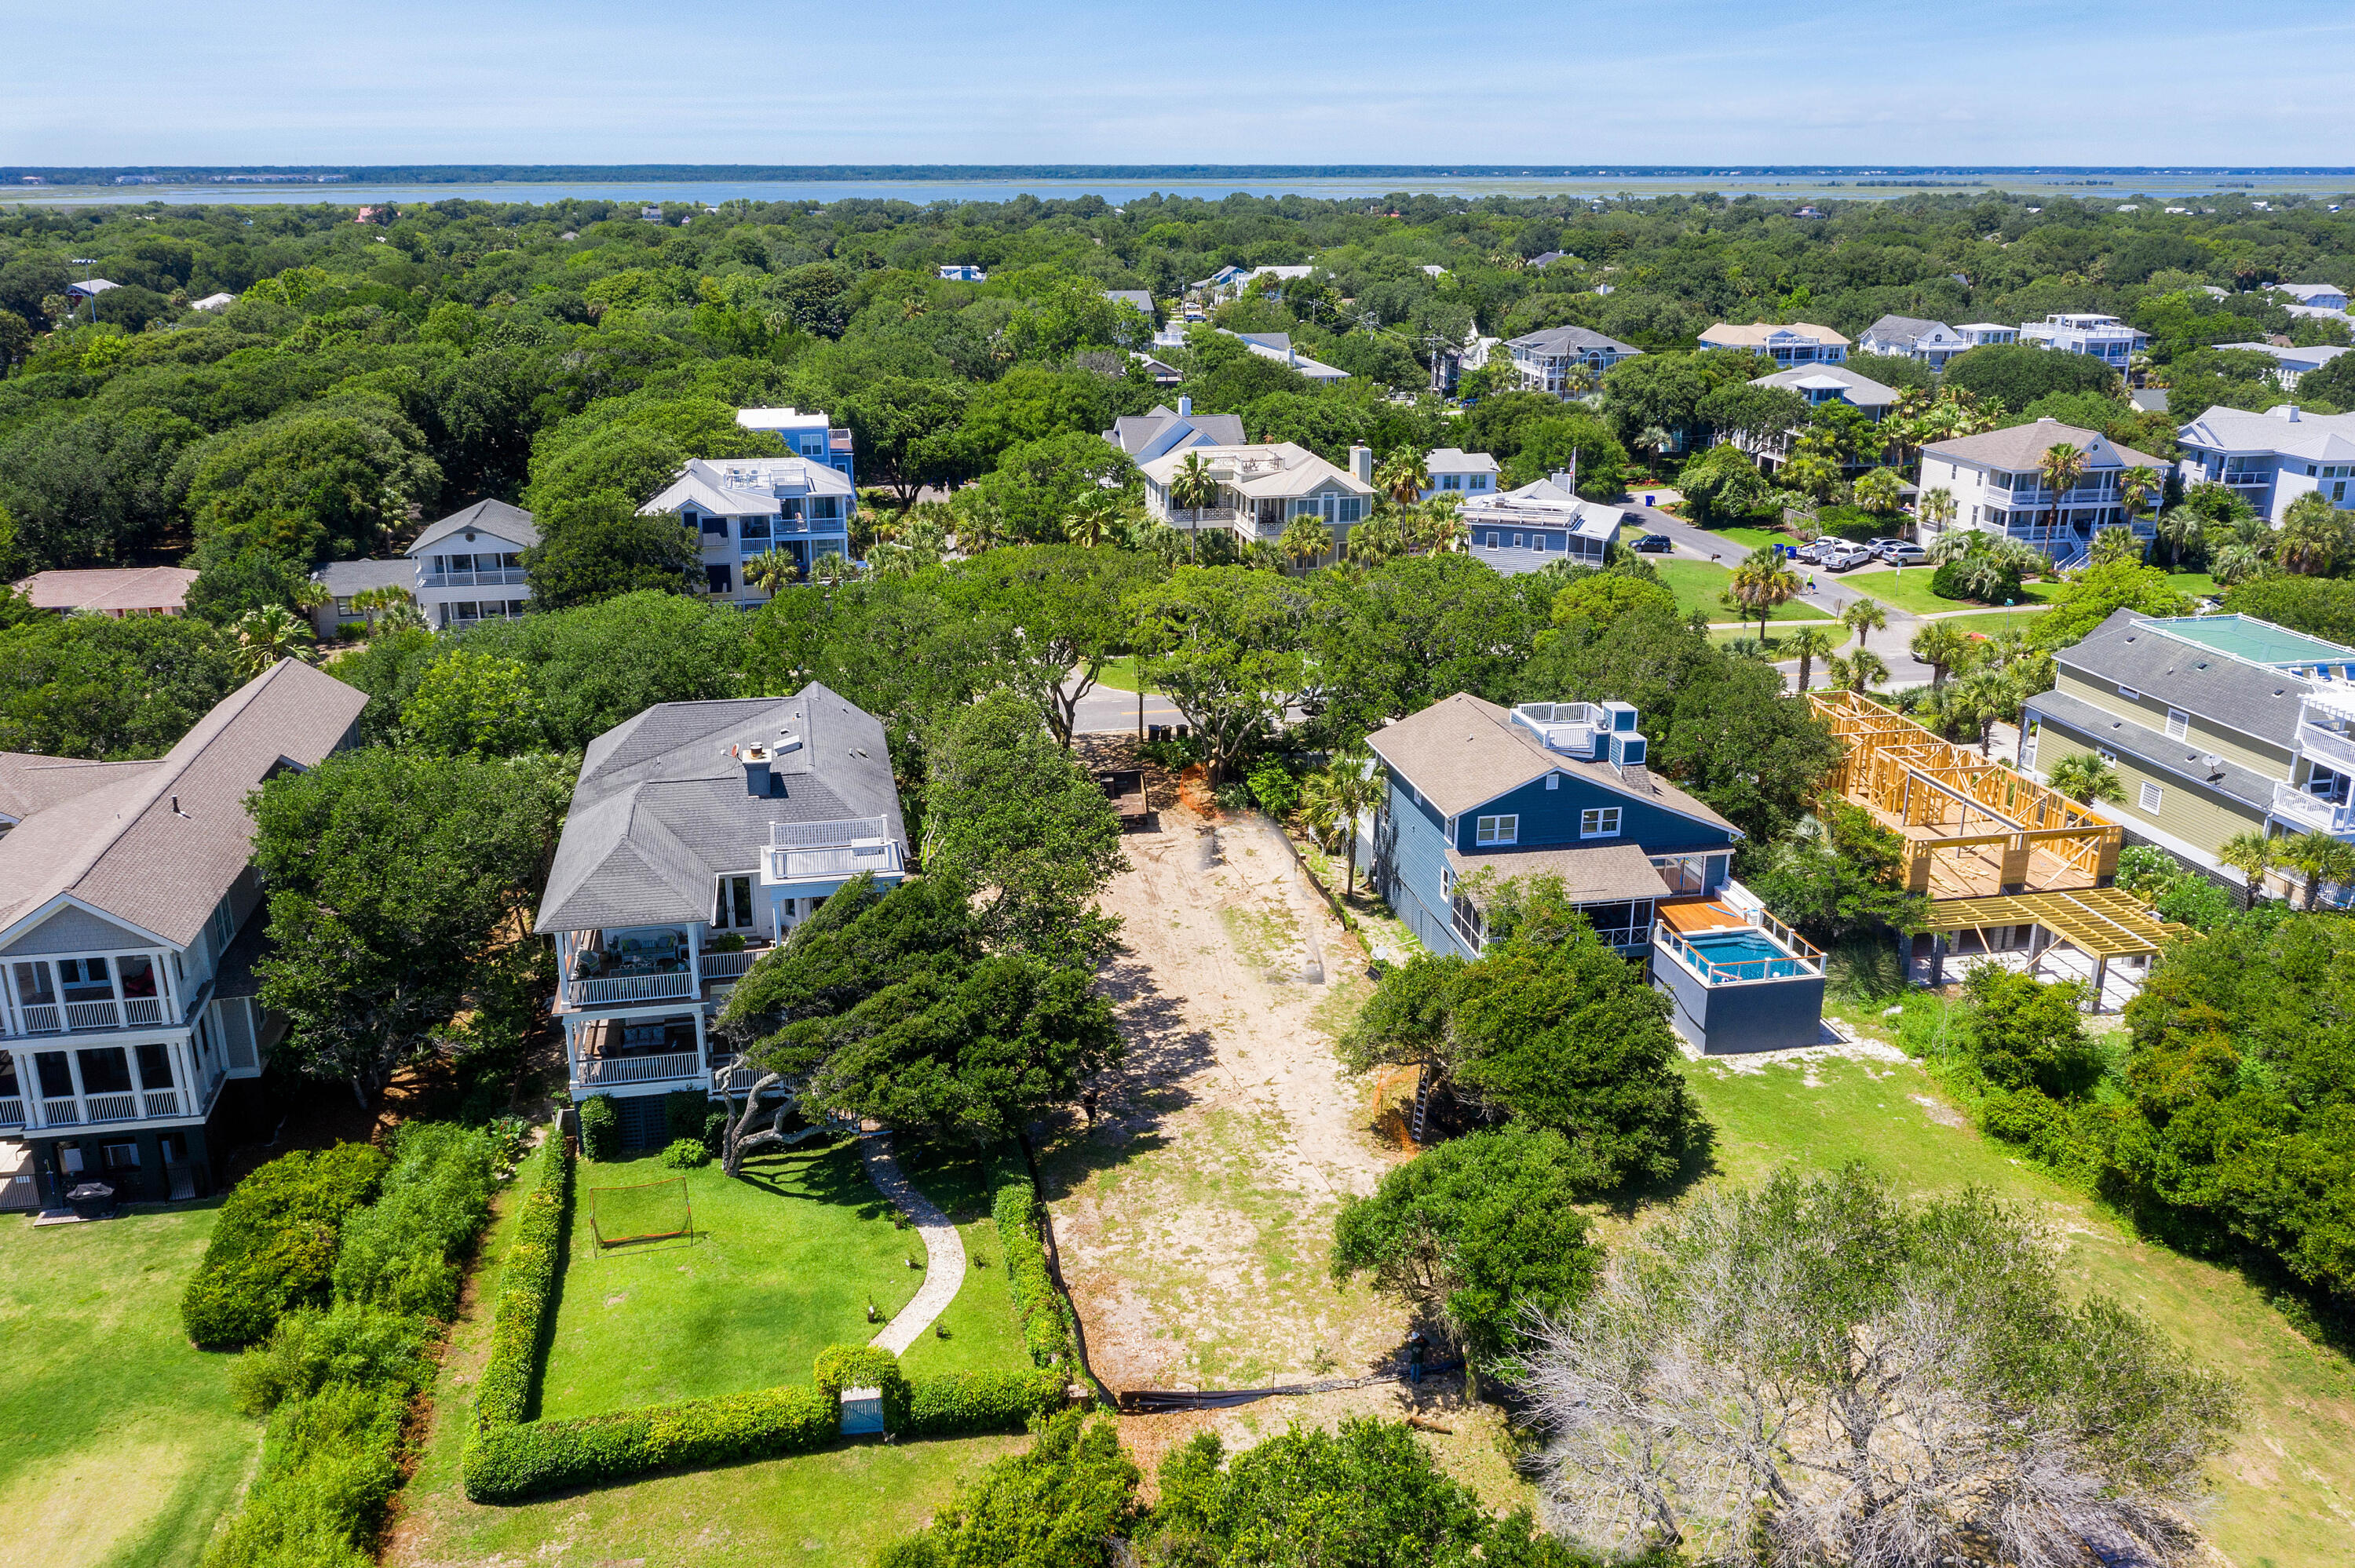 Isle of Palms Homes For Sale - 2910 Palm, Isle of Palms, SC - 2